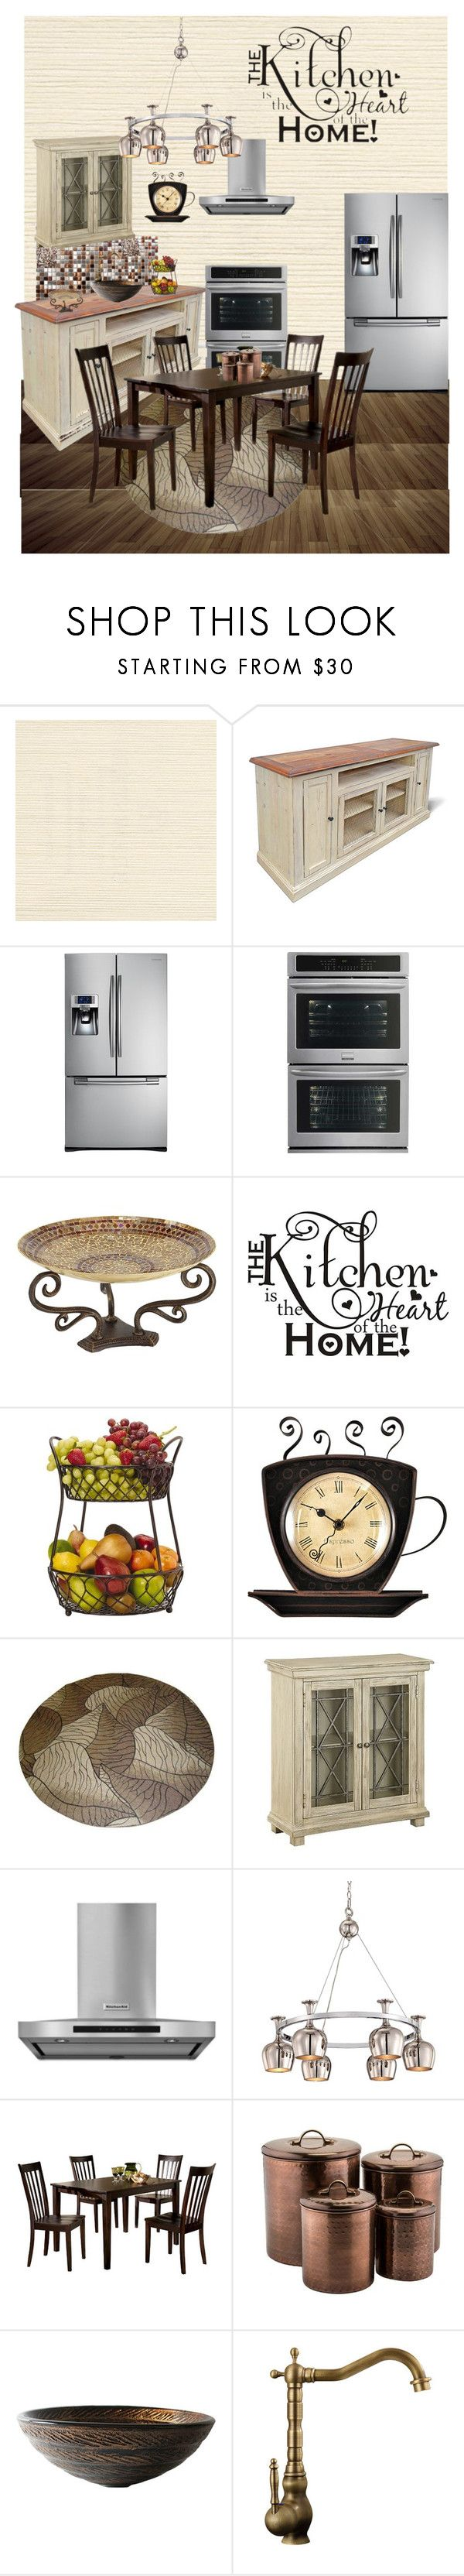 """""""Kitchen Remodel Inspiration"""" by blondemommy ❤ liked on Polyvore featuring interior, interiors, interior design, home, home decor, interior decorating, WALL, Samsung, Frigidaire and Pier 1 Imports"""